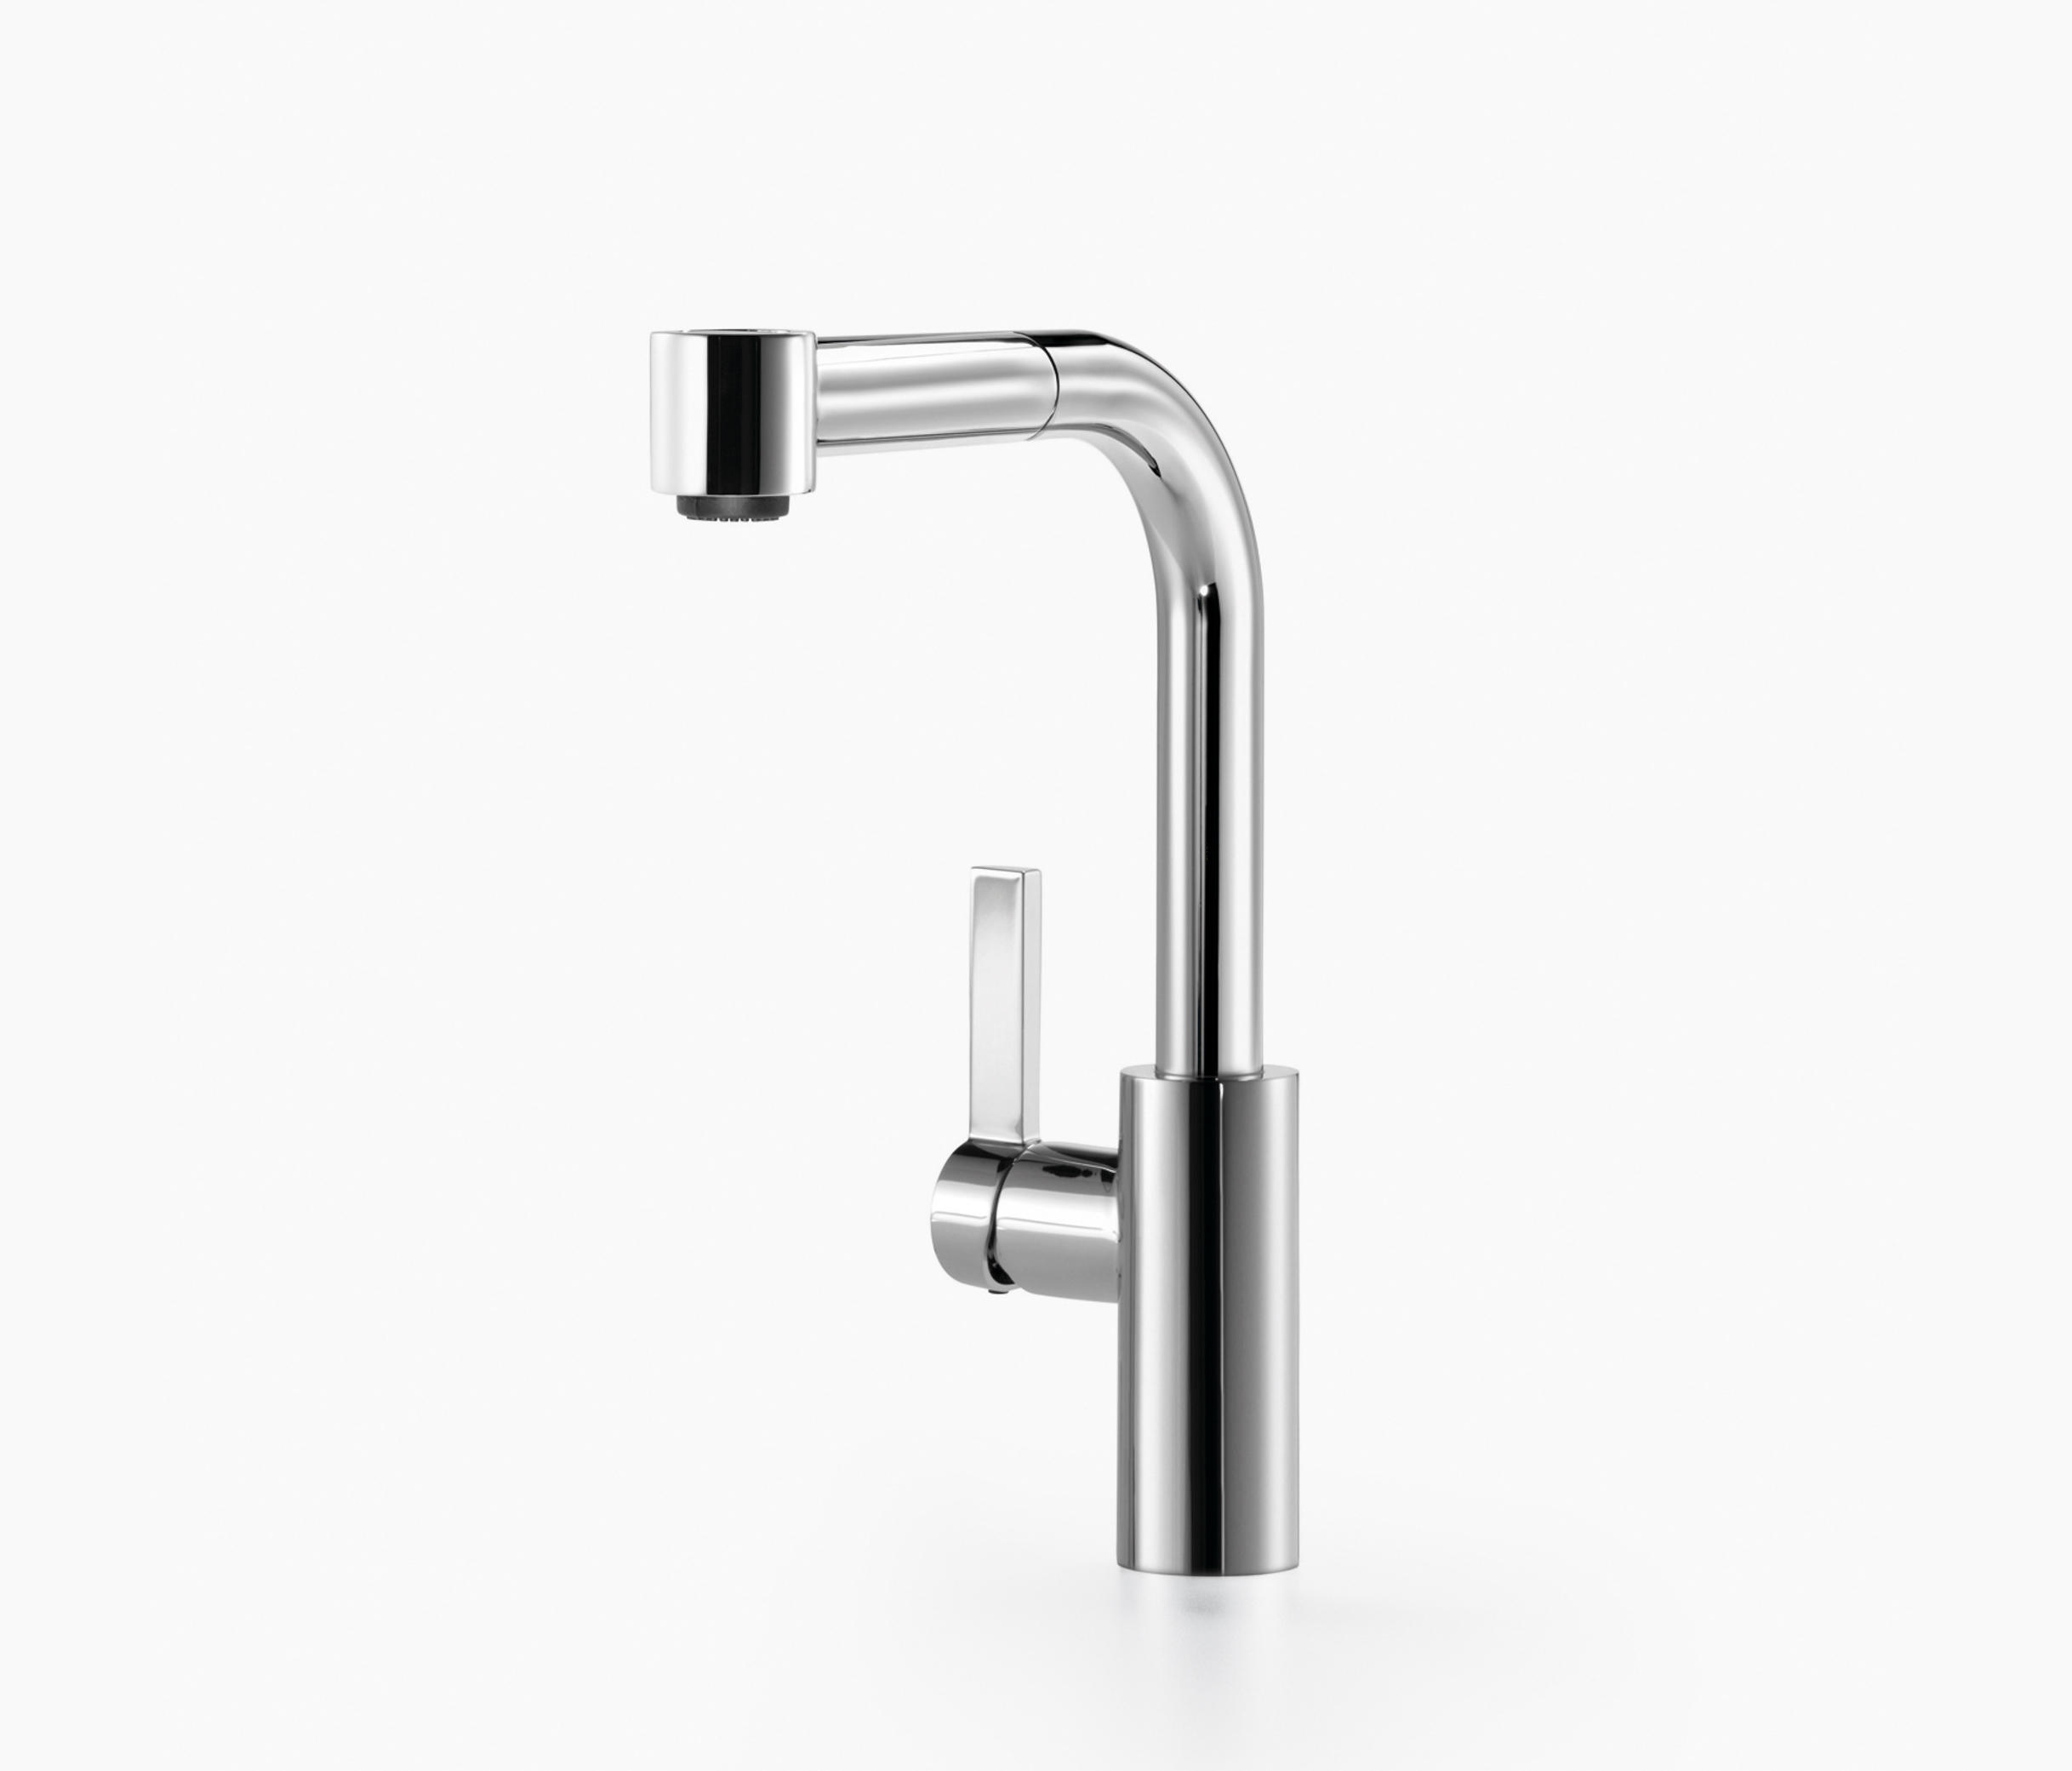 elio single lever mixer with extending spray kitchen taps from dornbracht architonic. Black Bedroom Furniture Sets. Home Design Ideas